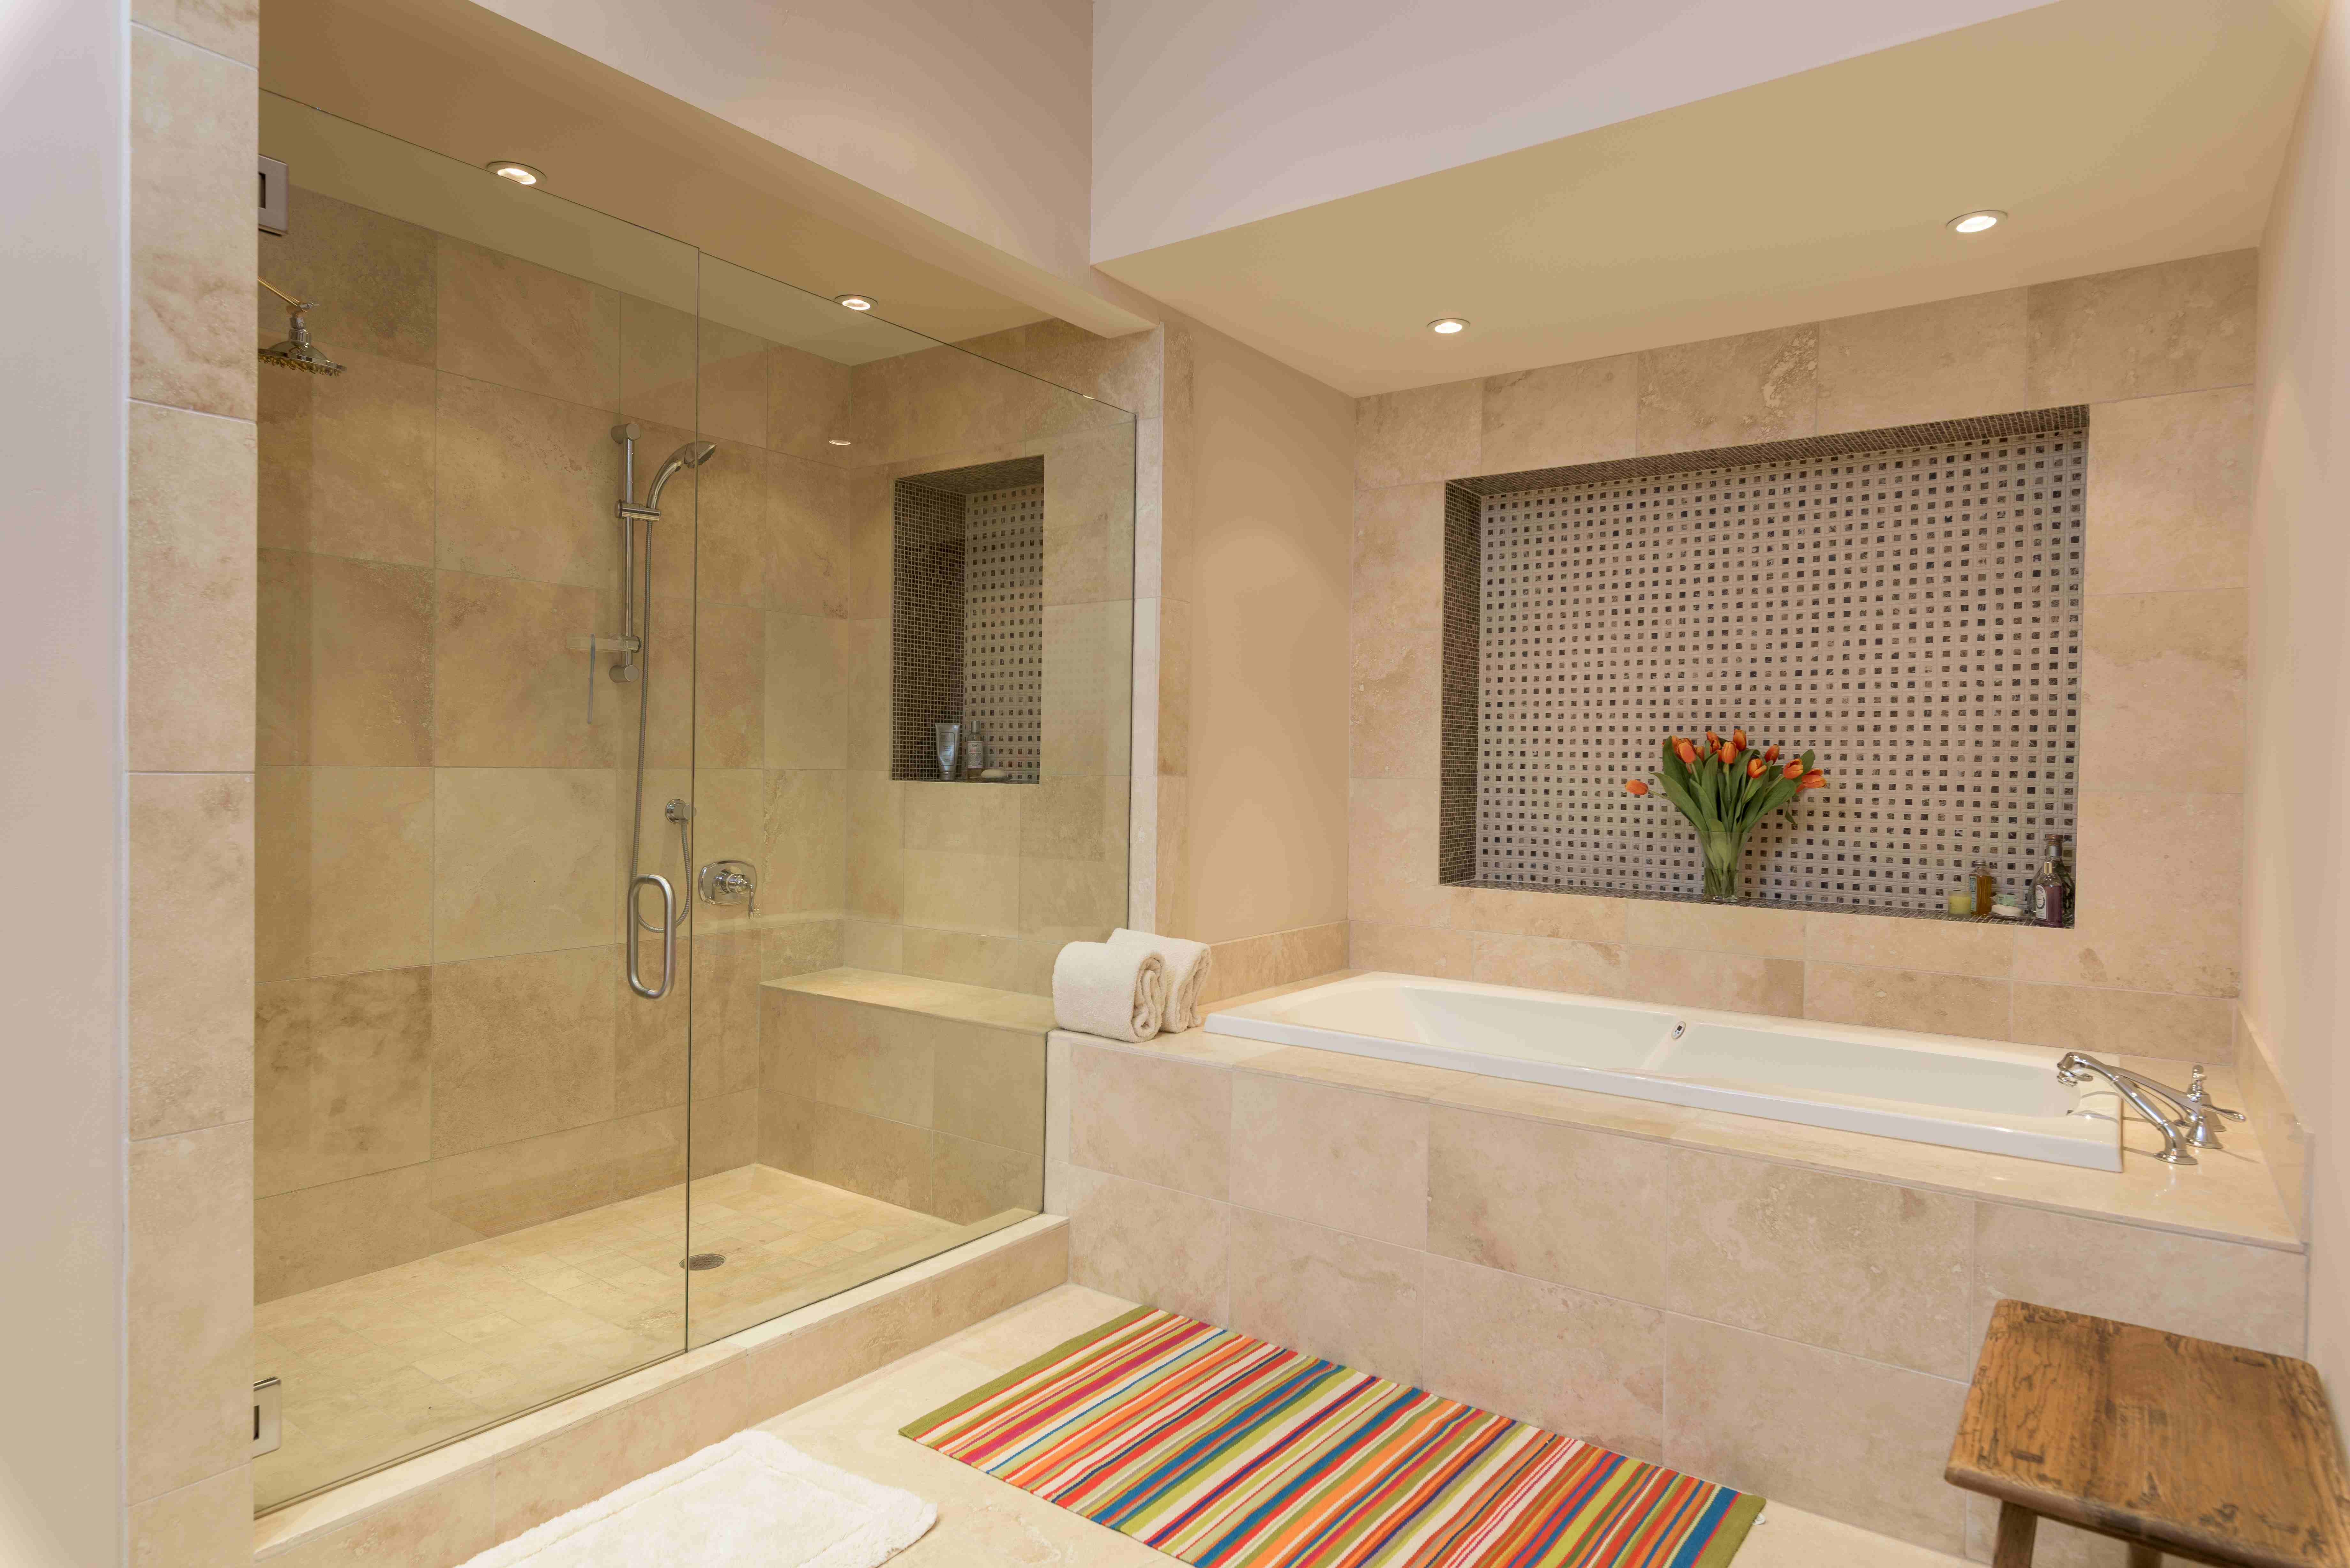 Additional photo for property listing at First and First Condo 100 N 1st Ave, Unit C 凯彻姆, 爱达荷州 83340 美国